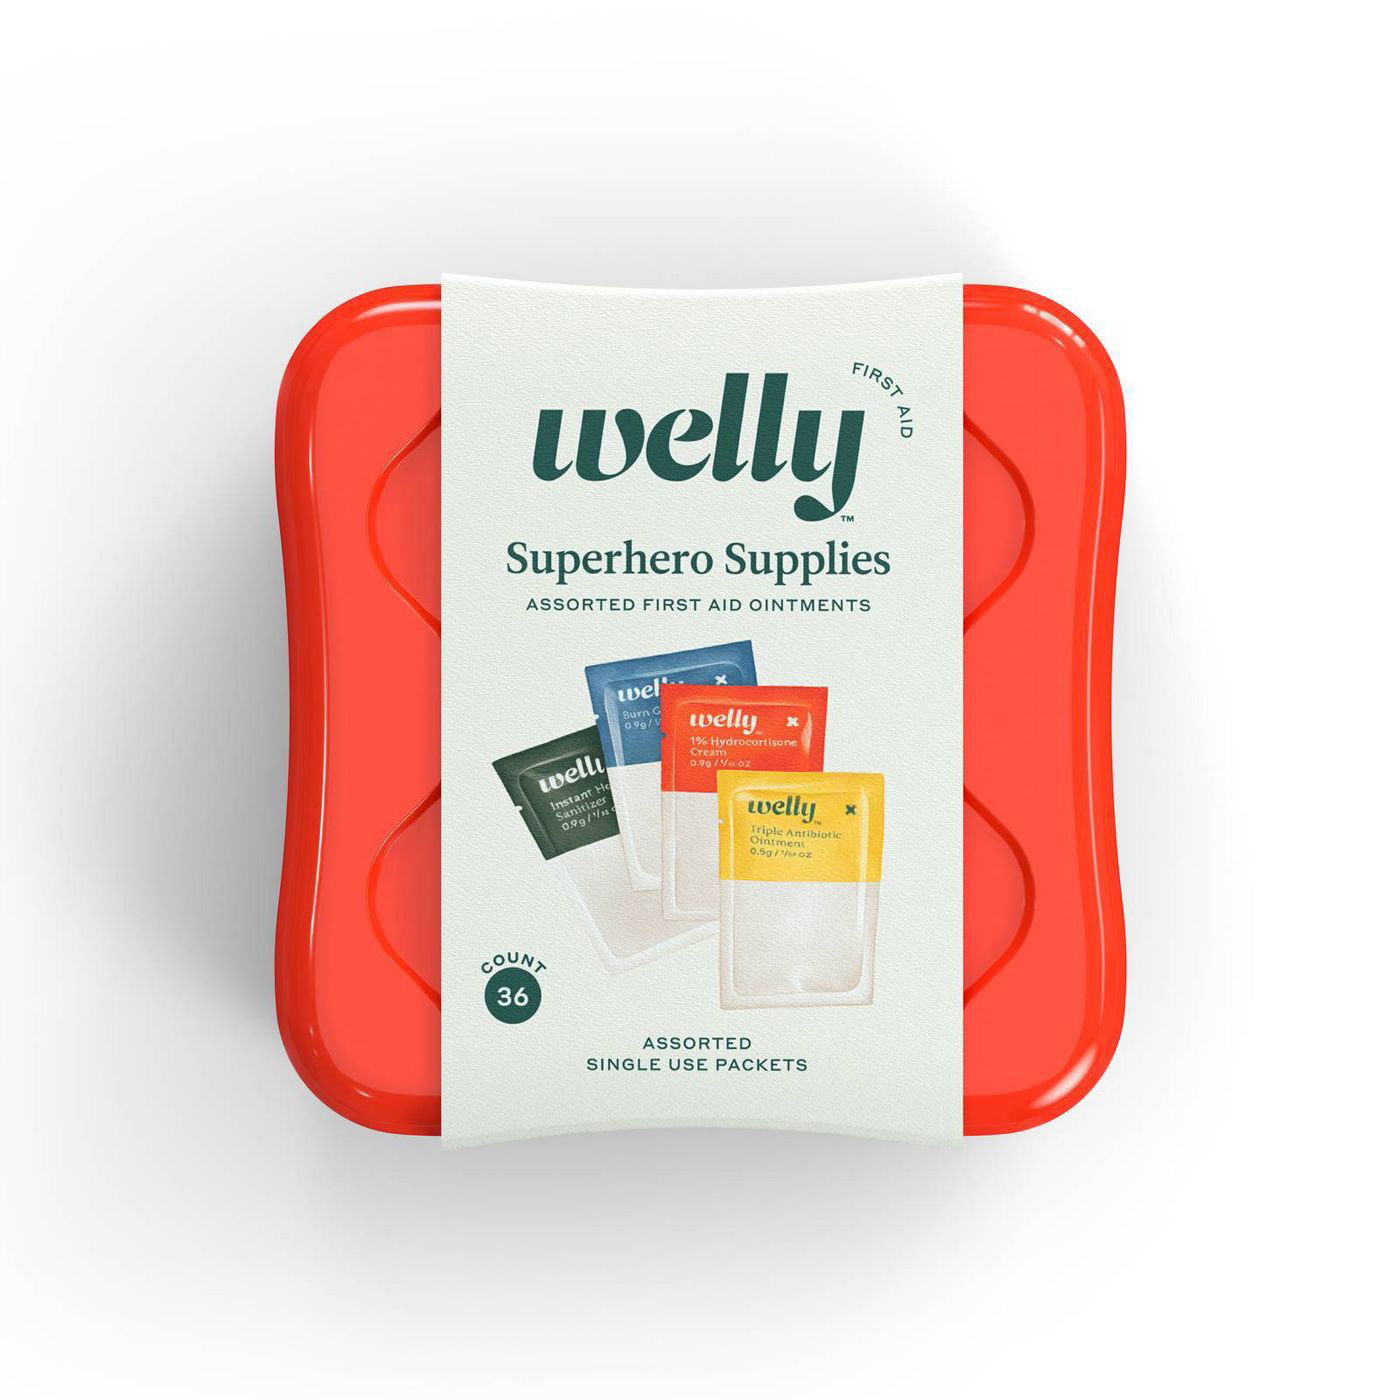 Welly Superhero Supplies Assorted Ointment First Aid Kit